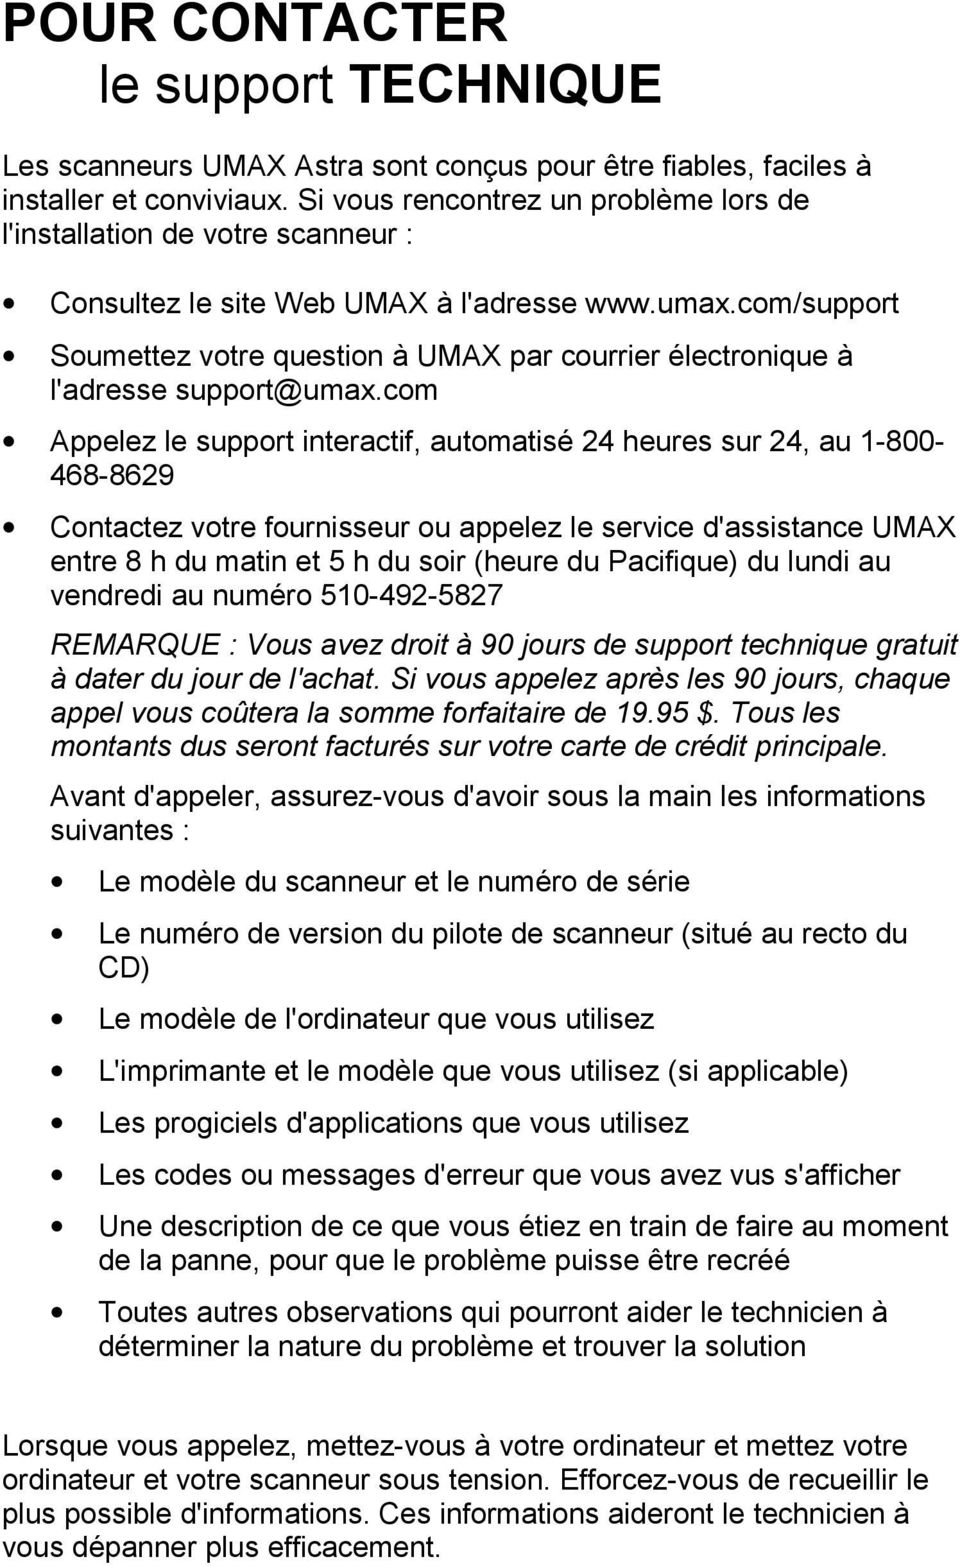 com/support Soumettez votre question à UMAX par courrier électronique à l'adresse support@umax.